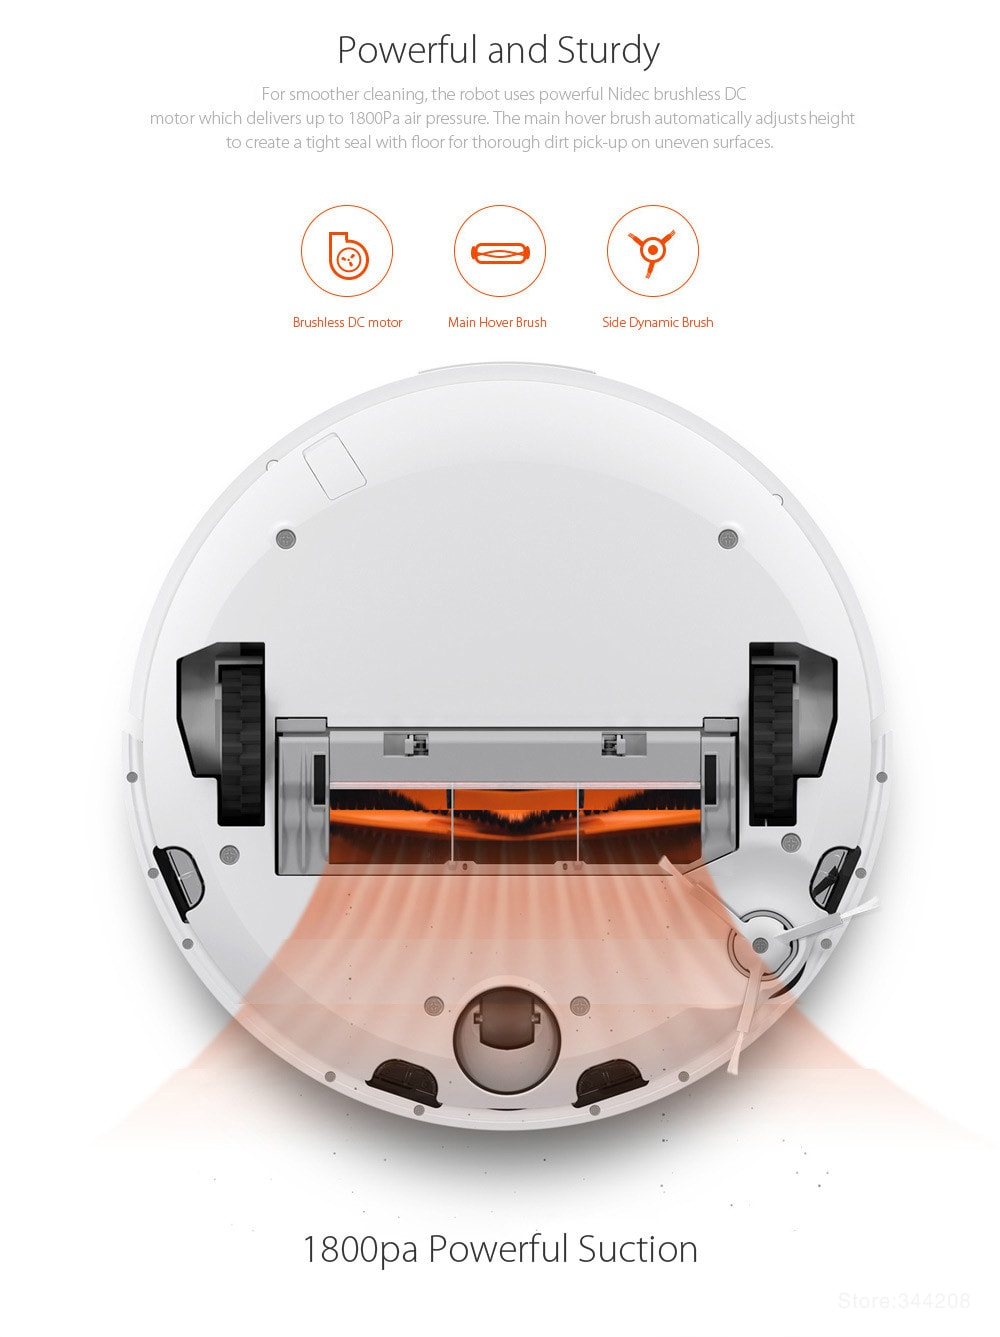 Xiaomi MIJIA 1C Robot Vacuum Cleaner for Home with Cleaning Tools - 11